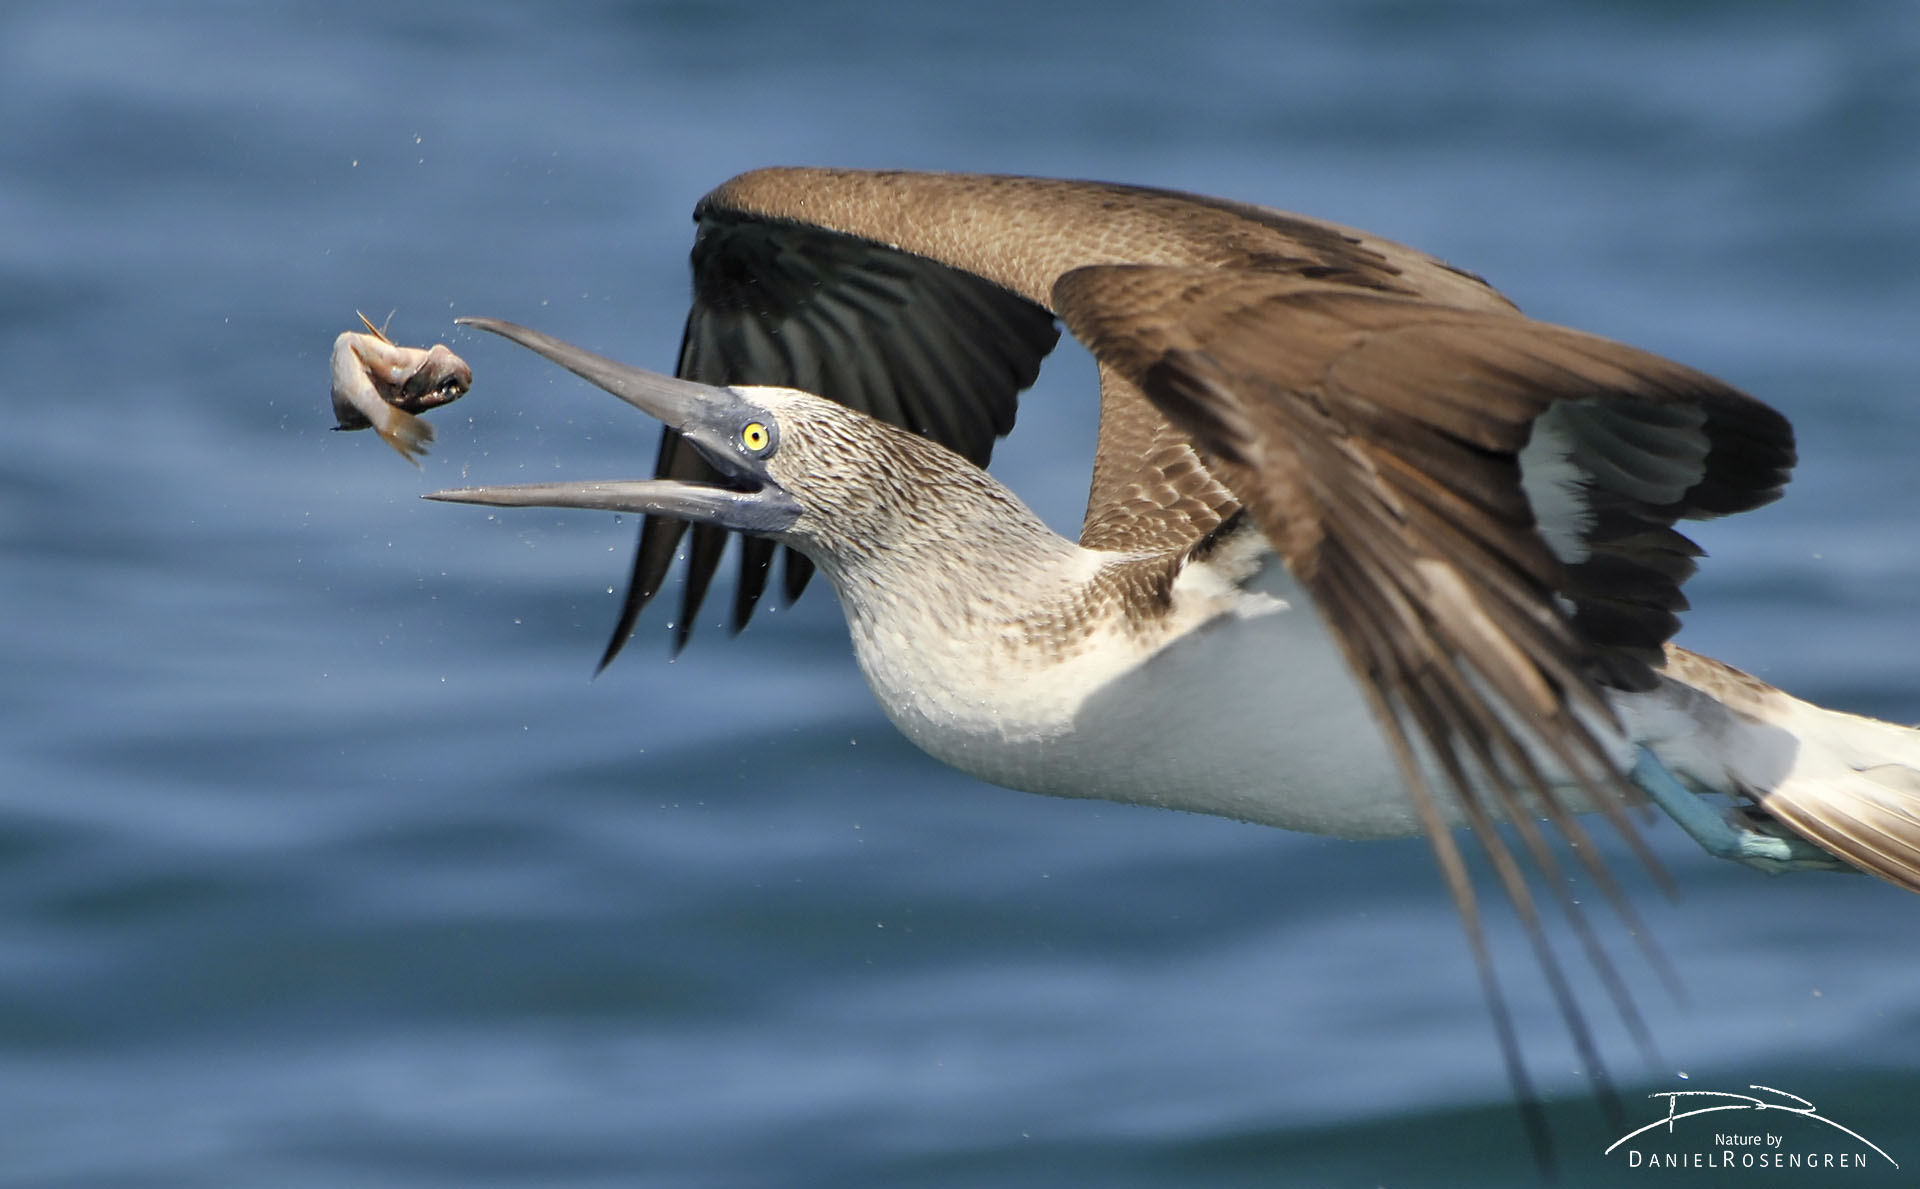 A Blue-footed booby adjusting its grip of the fish by throwing it in the air, mid flight. © Daniel Rosengren